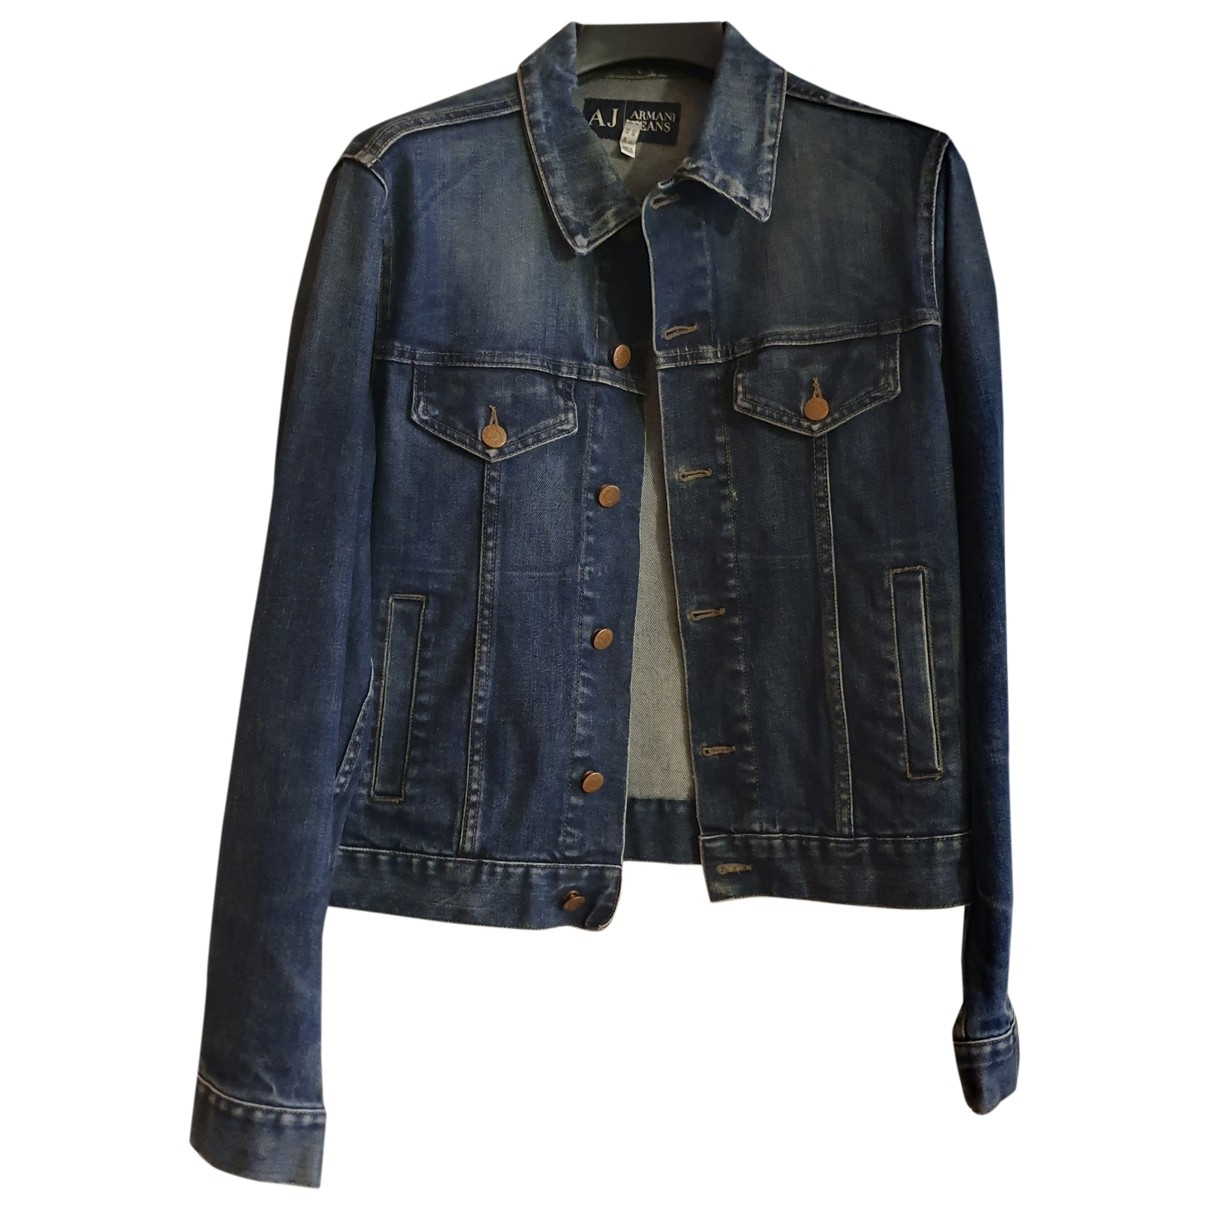 Armani Jeans \N Blue Denim - Jeans jacket  for Men 48 IT